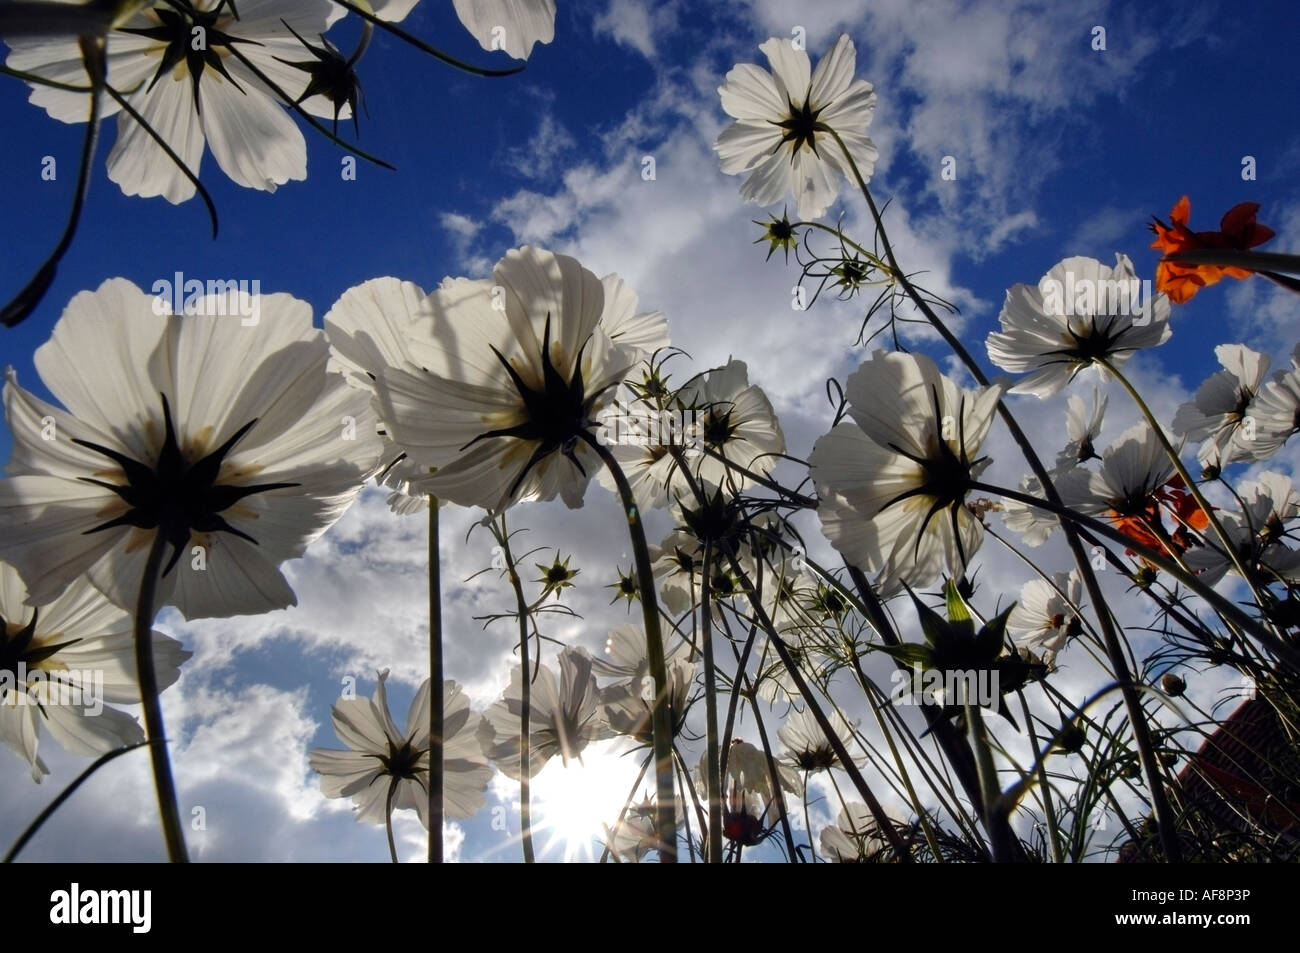 Clouds of white cosmos flowers in an English country garden in summer - Stock Image